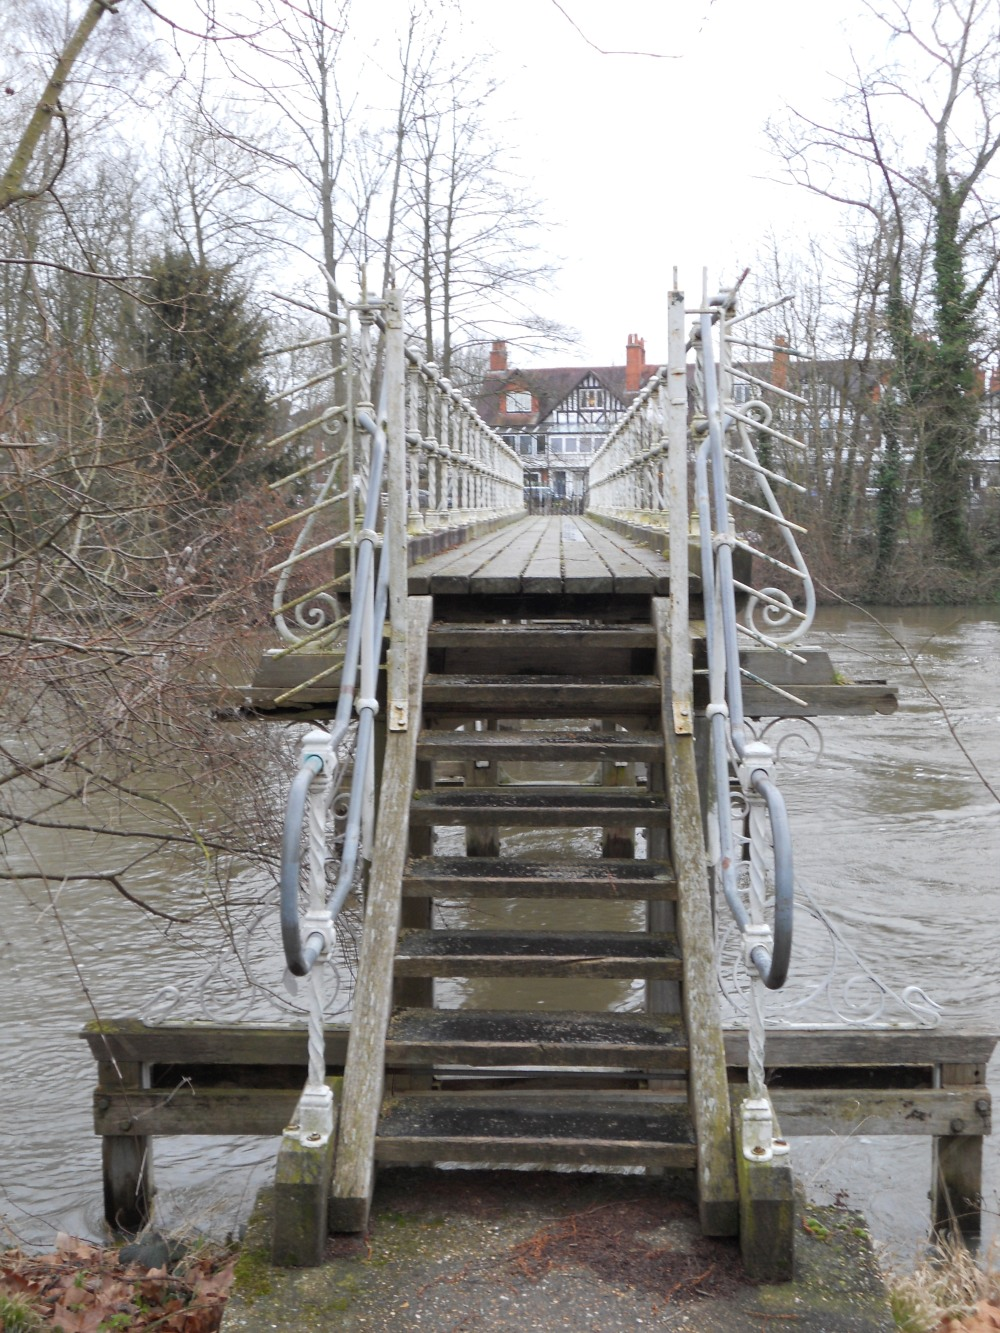 Footbridge over the Thames to Guards Club Island